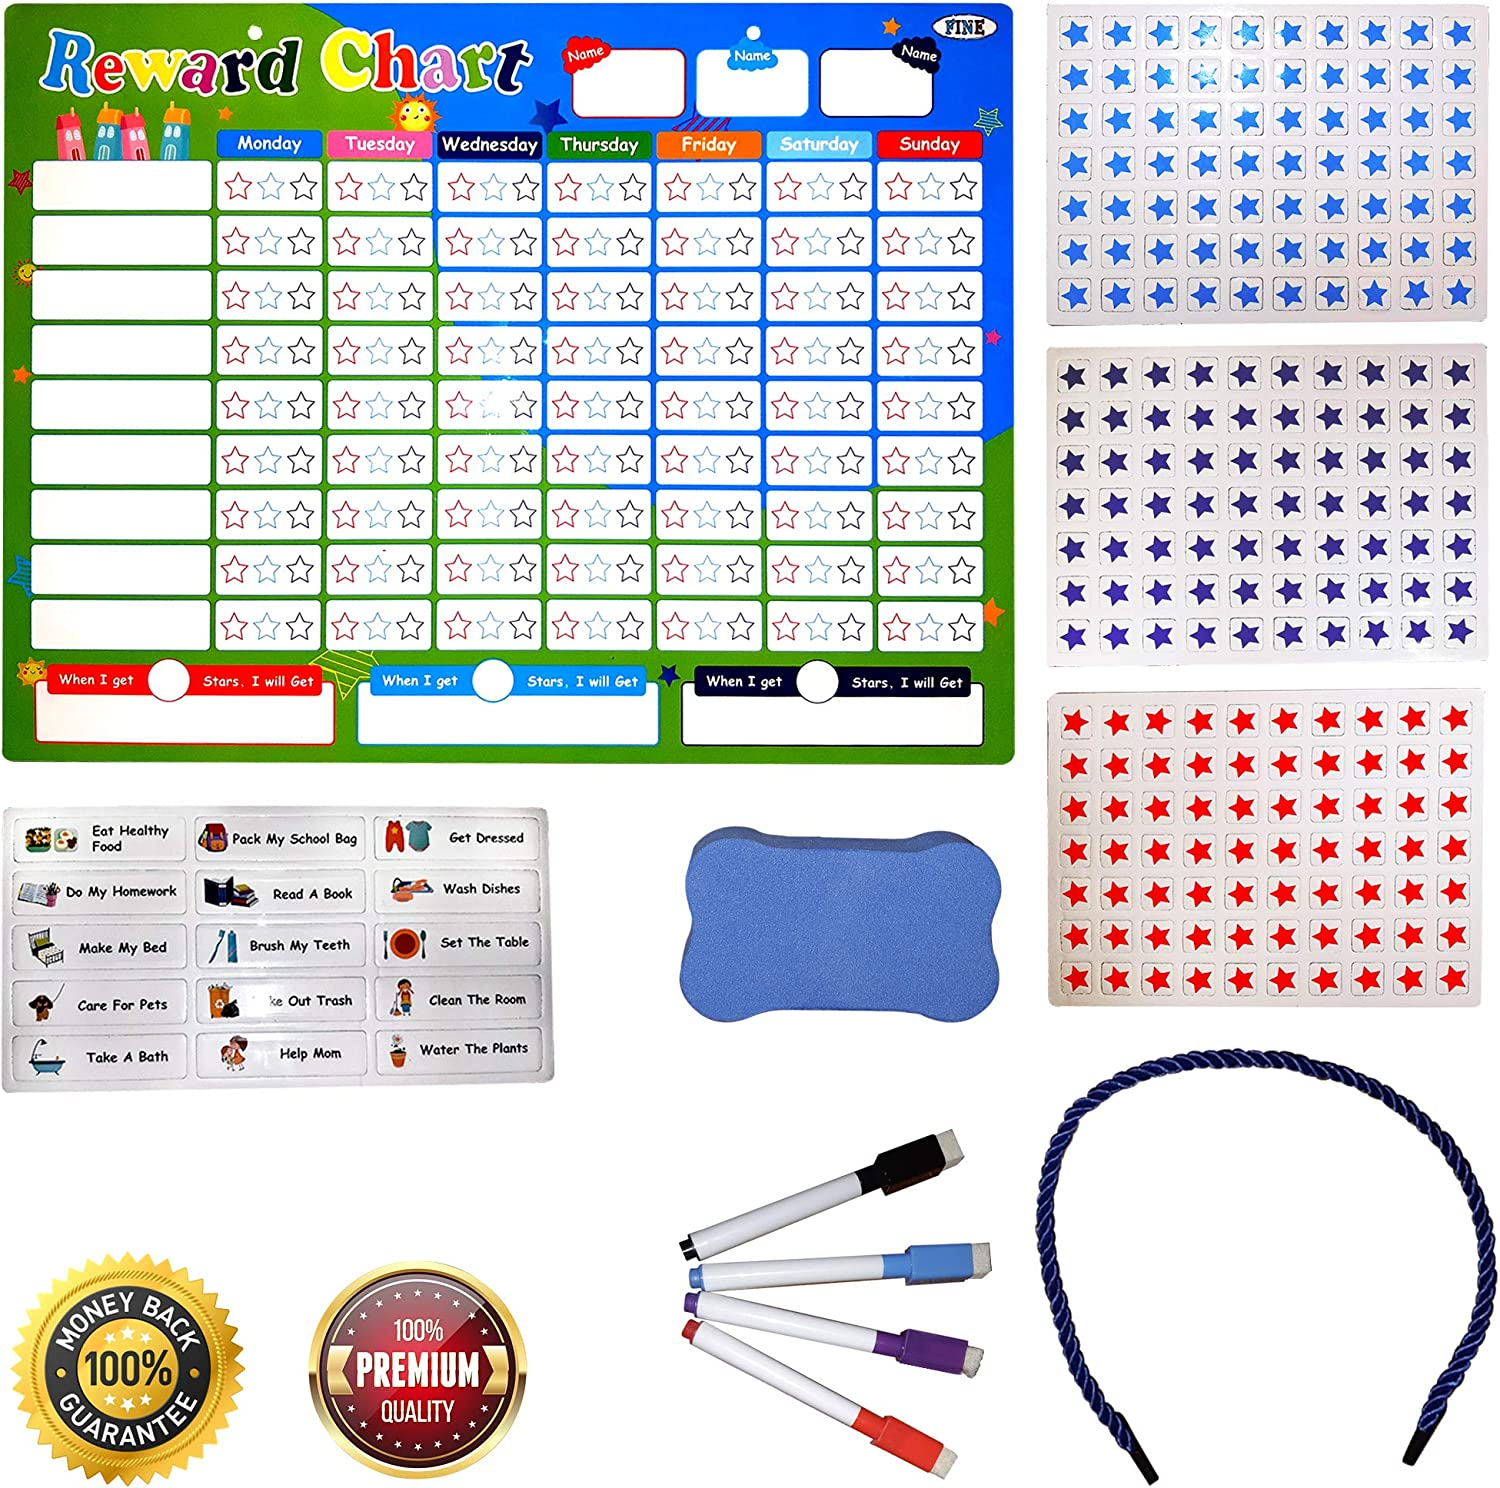 Pre Assembled Playco Magnetic Reward Chart for Kids 11 X 15.5 inches A Must Have for Your Parenting Toolkit Responsibilities Routines Behaviors Chores